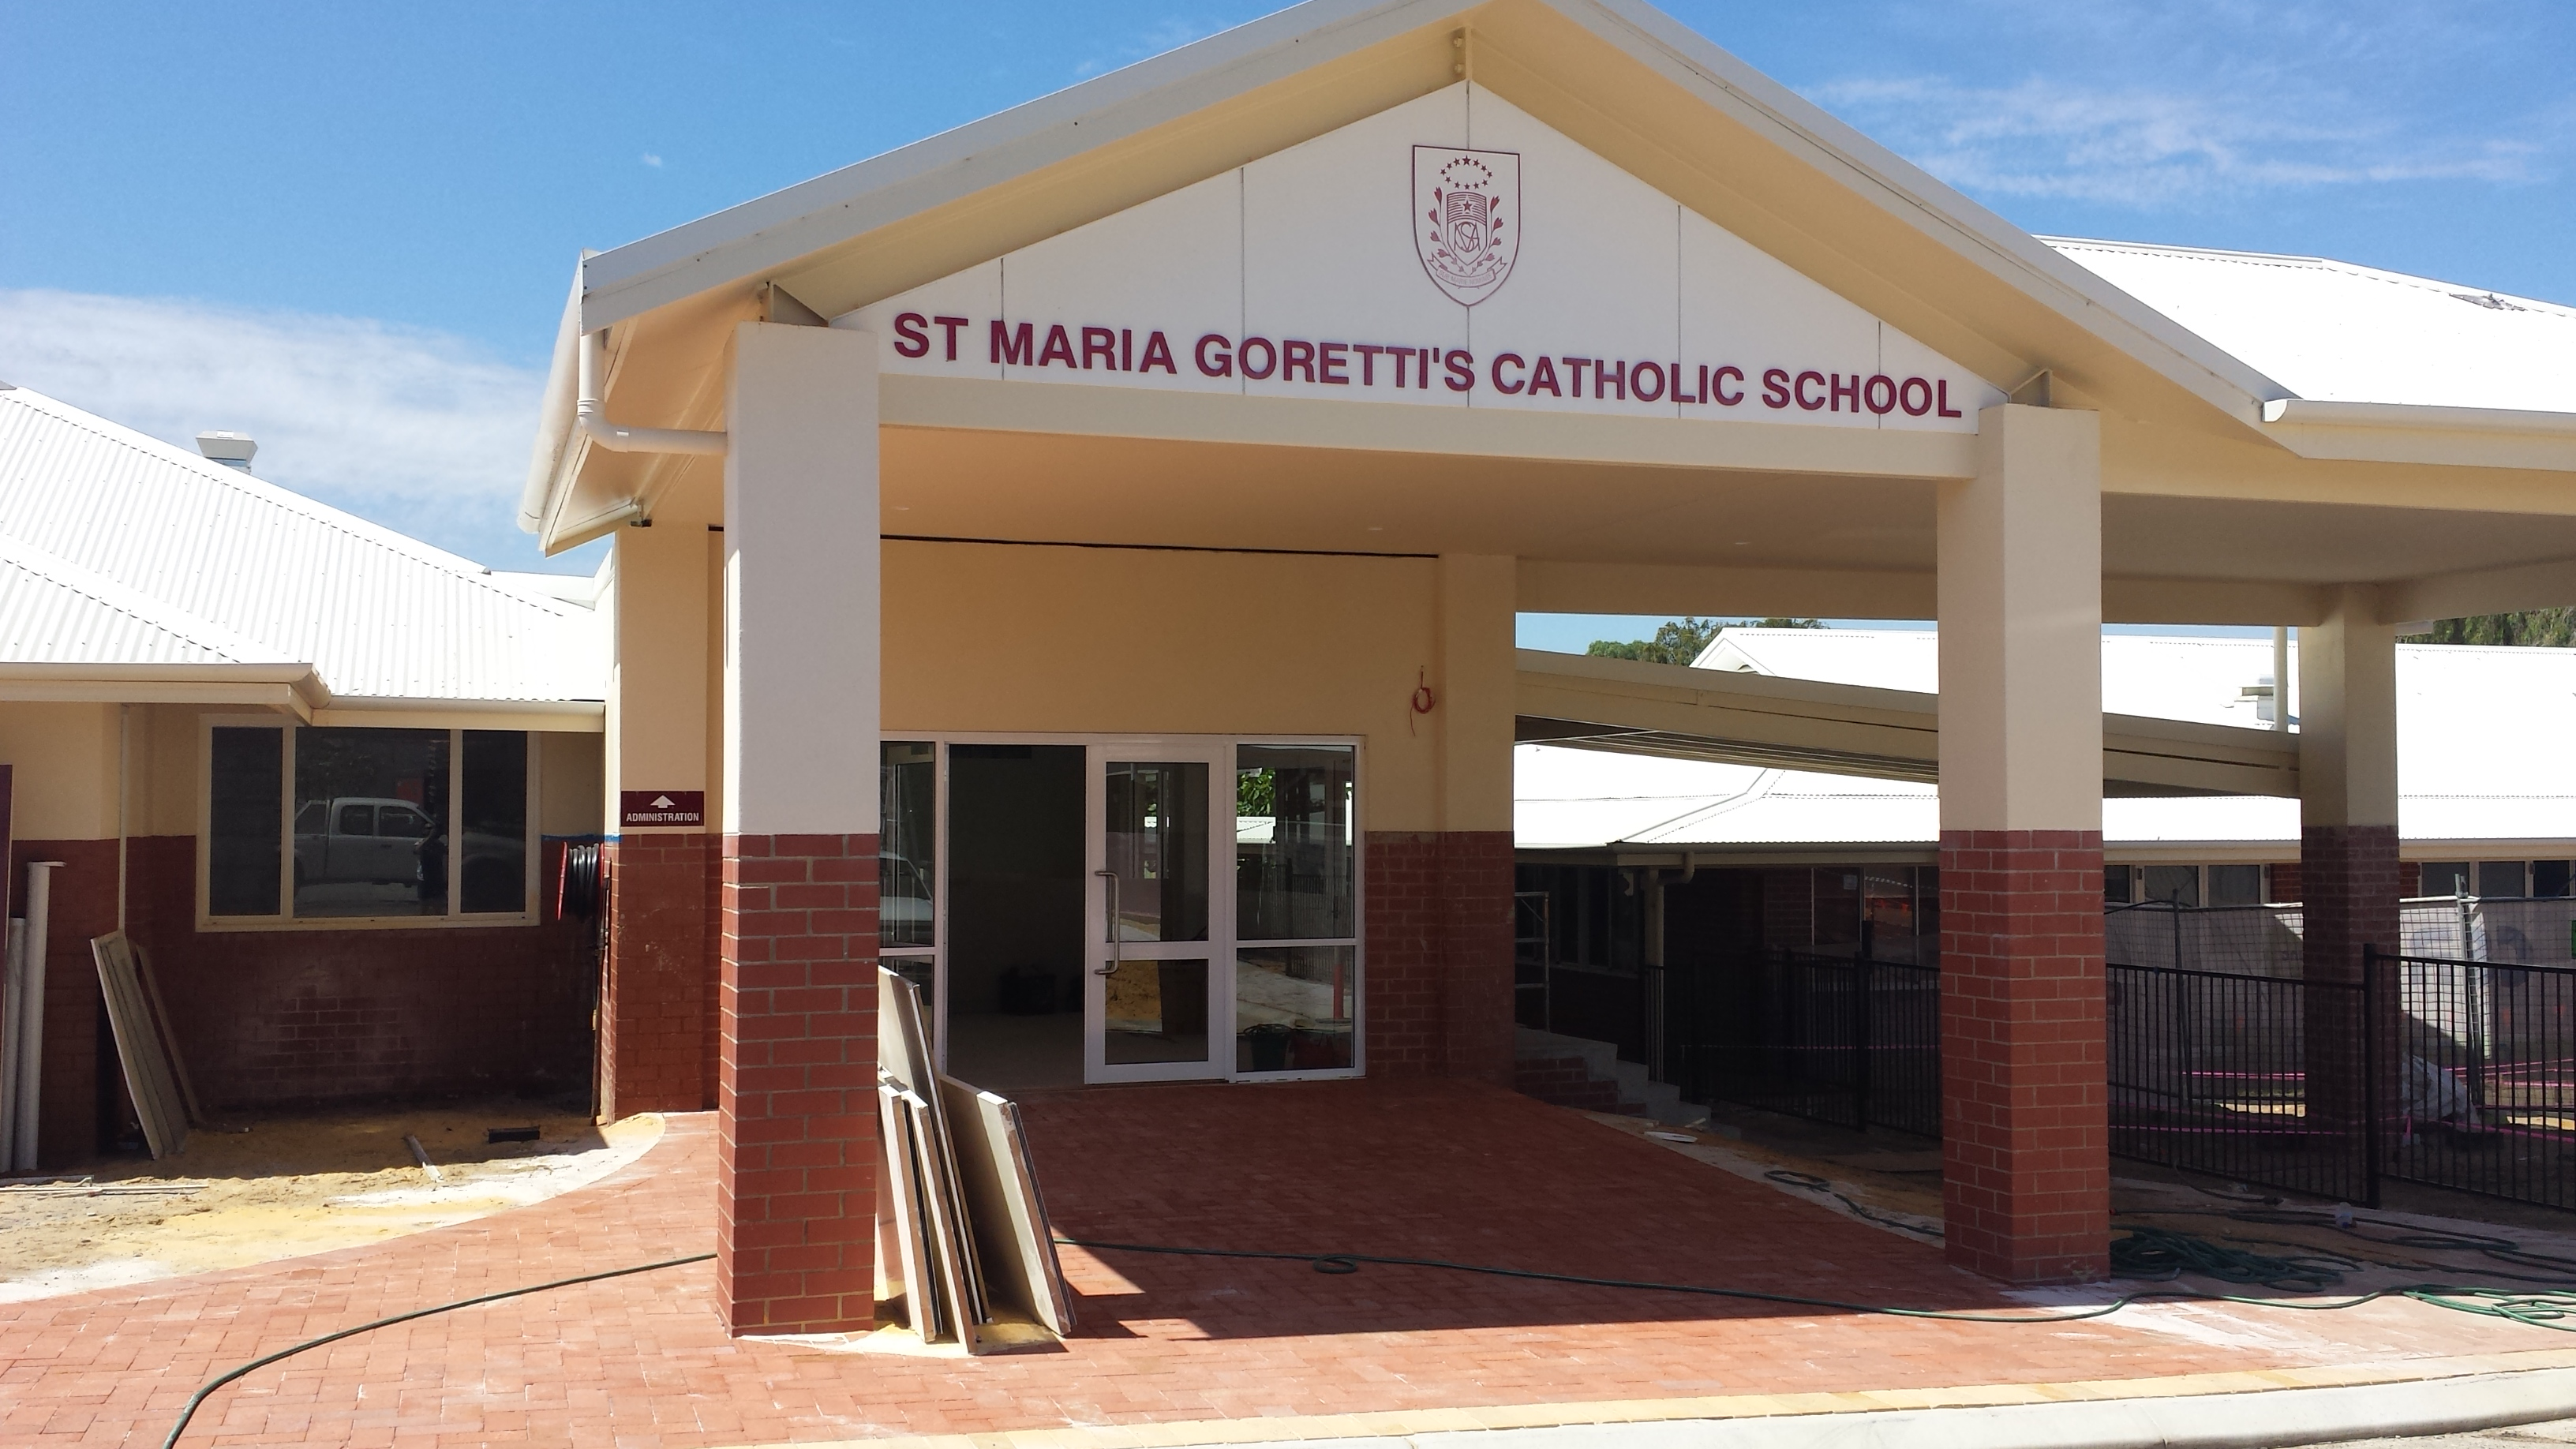 St Maria Goretti's Catholic School